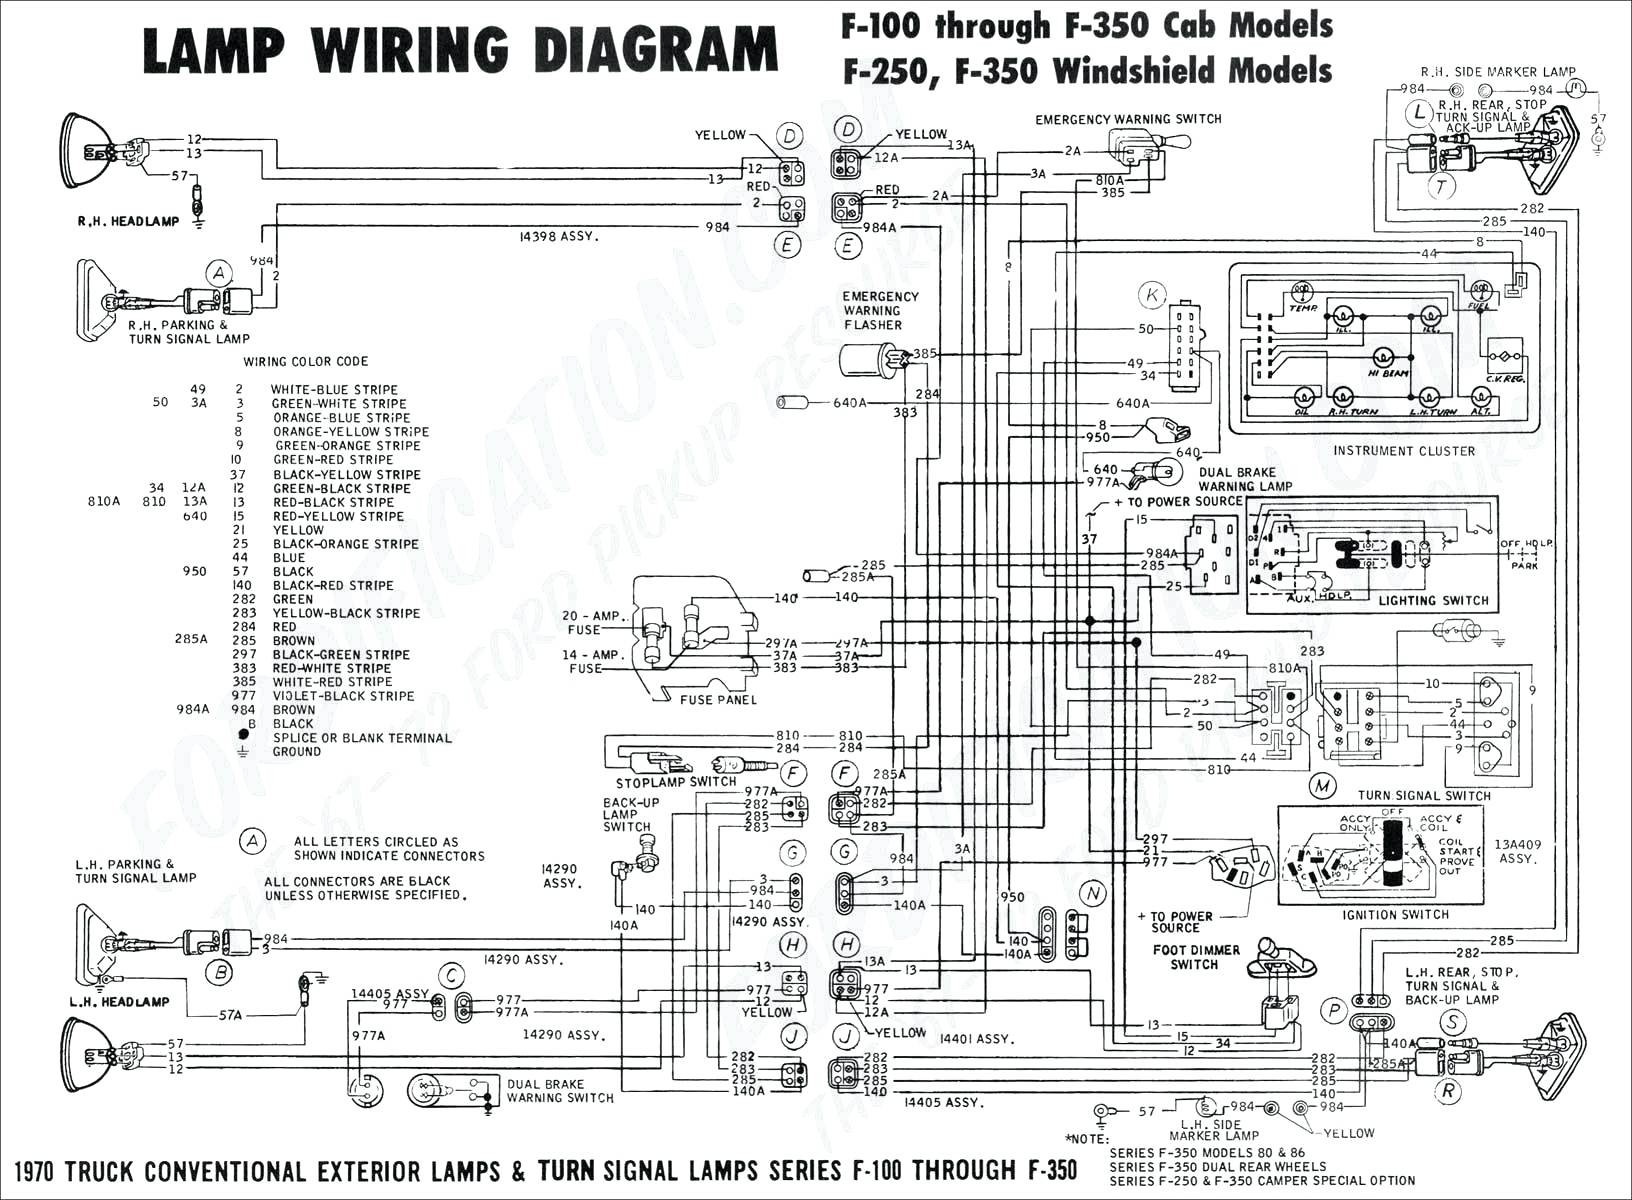 Electric Fuel Pump Relay Wiring Diagram Leryn Franco In Addition 2000 toyota Tundra Fuel Pump Wiring Diagram Of Electric Fuel Pump Relay Wiring Diagram